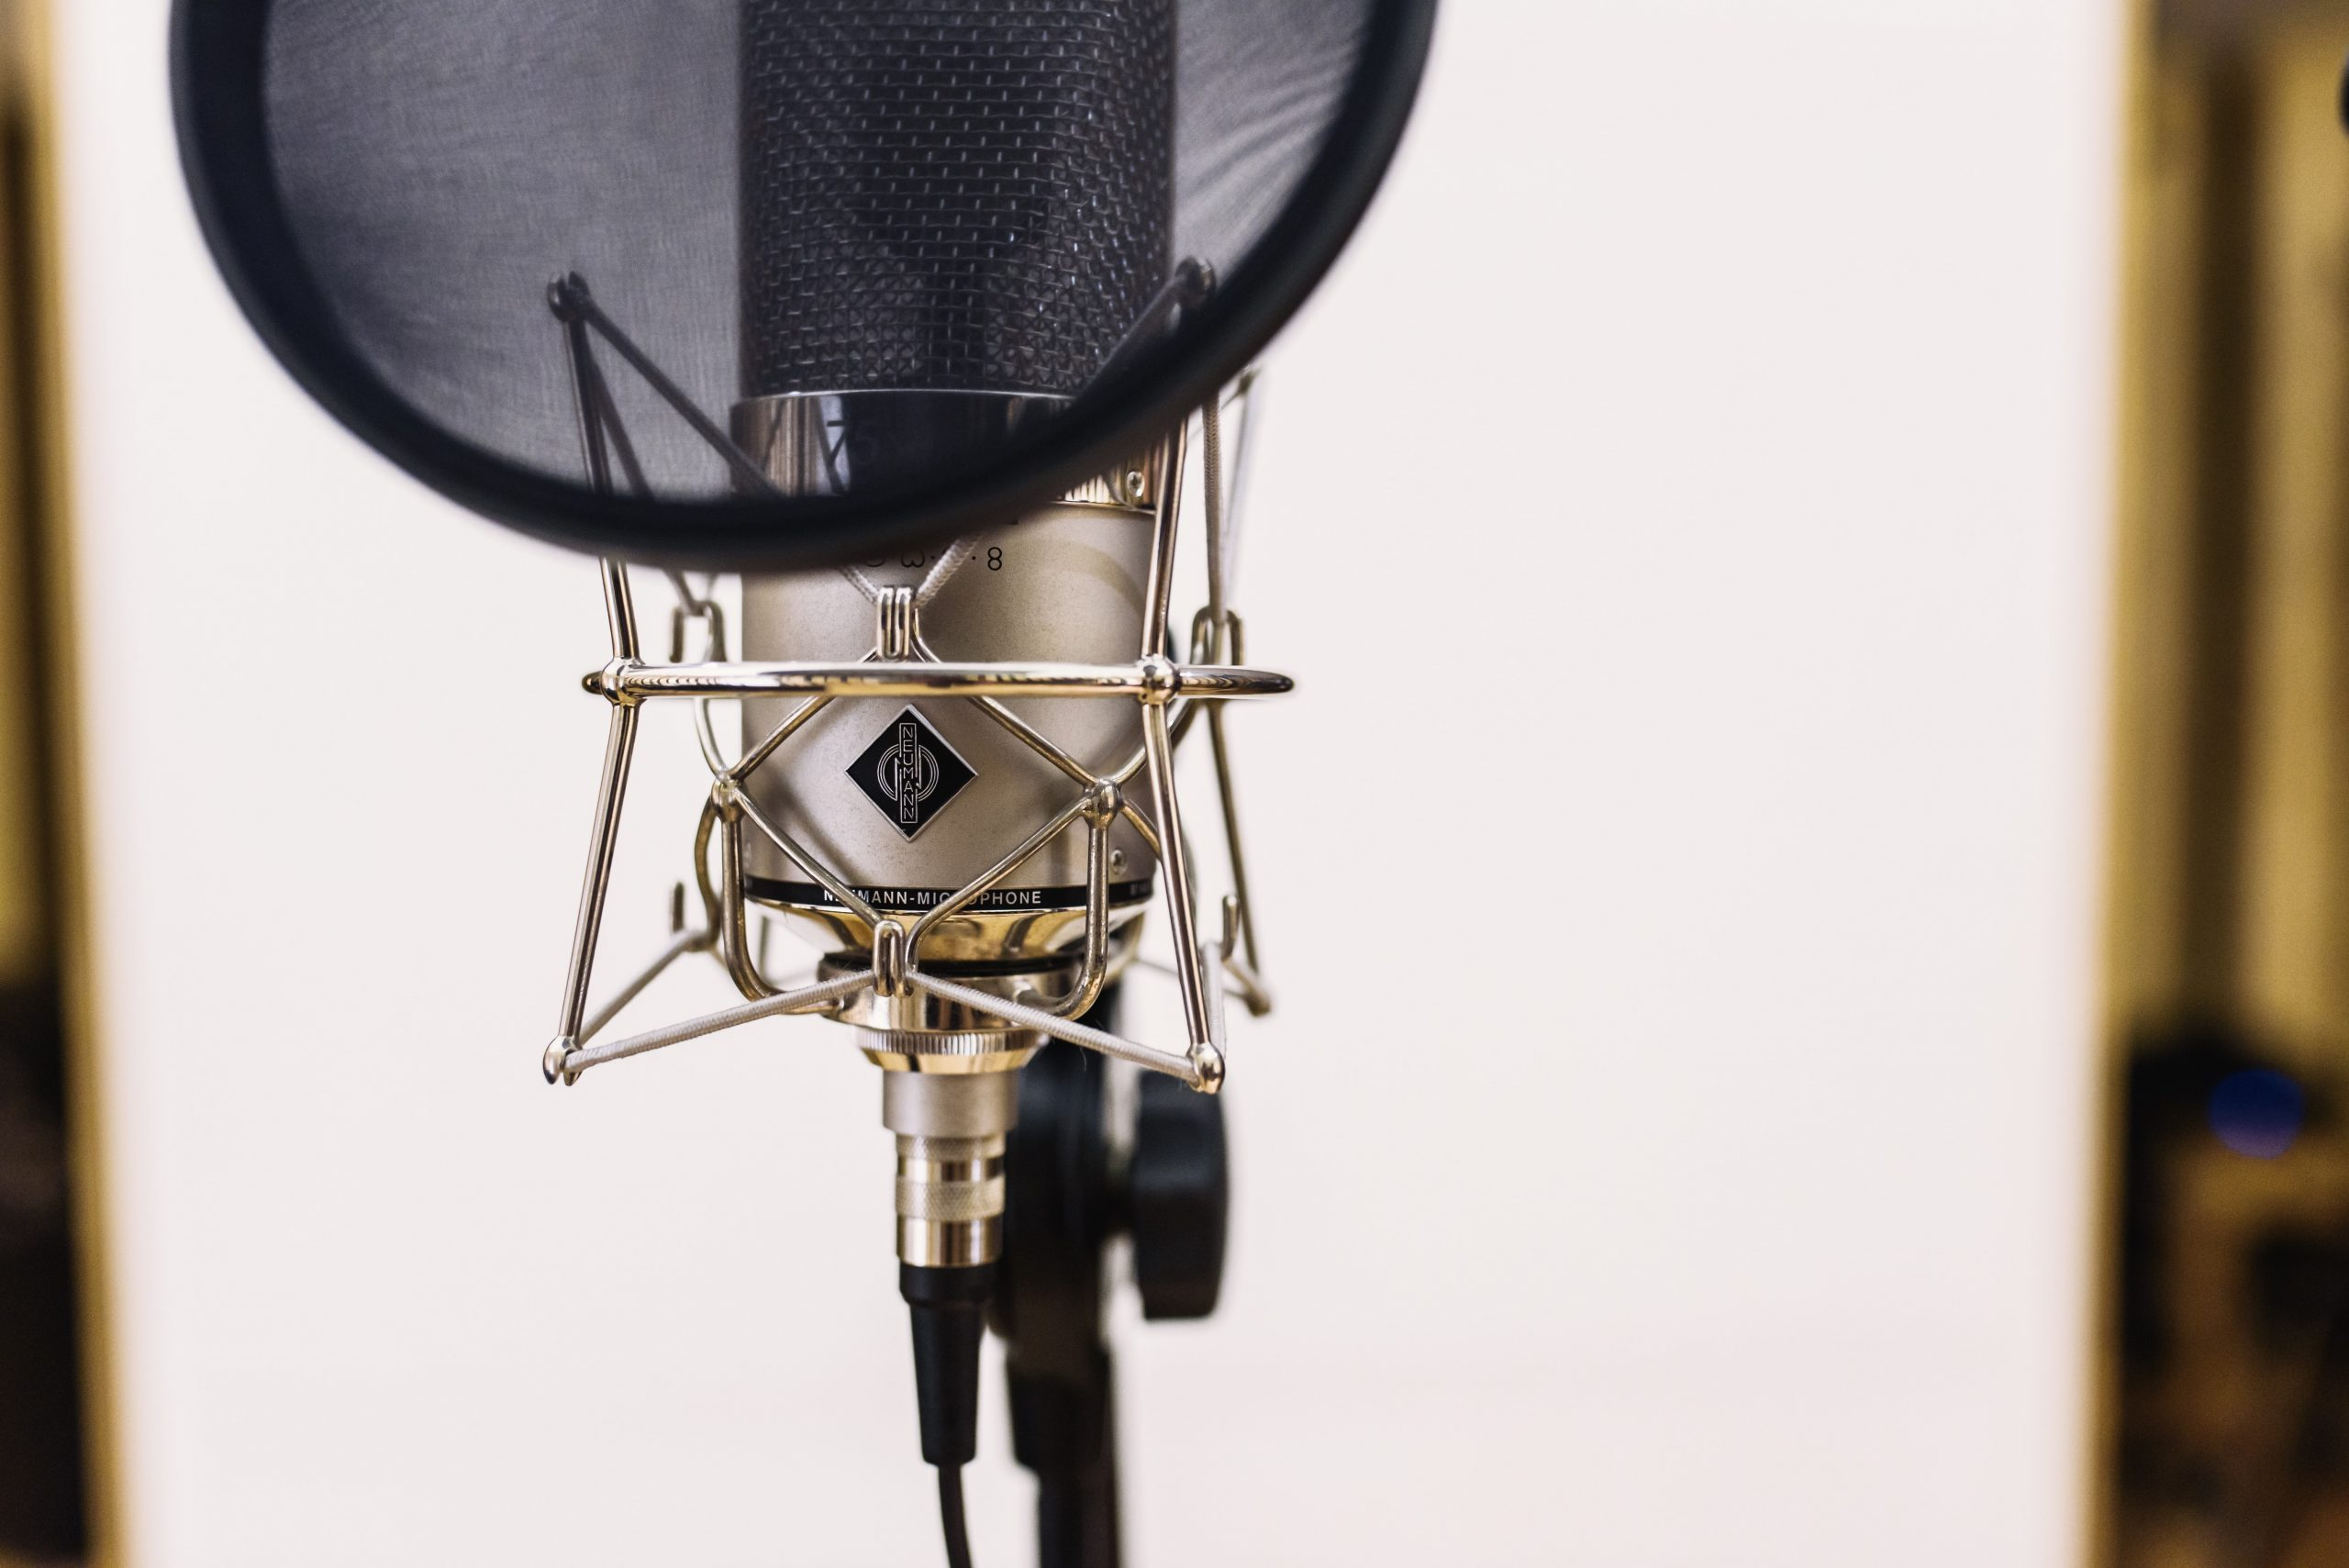 What to Look for in a Voiceover Artist - Neumann Condenser-Microphone